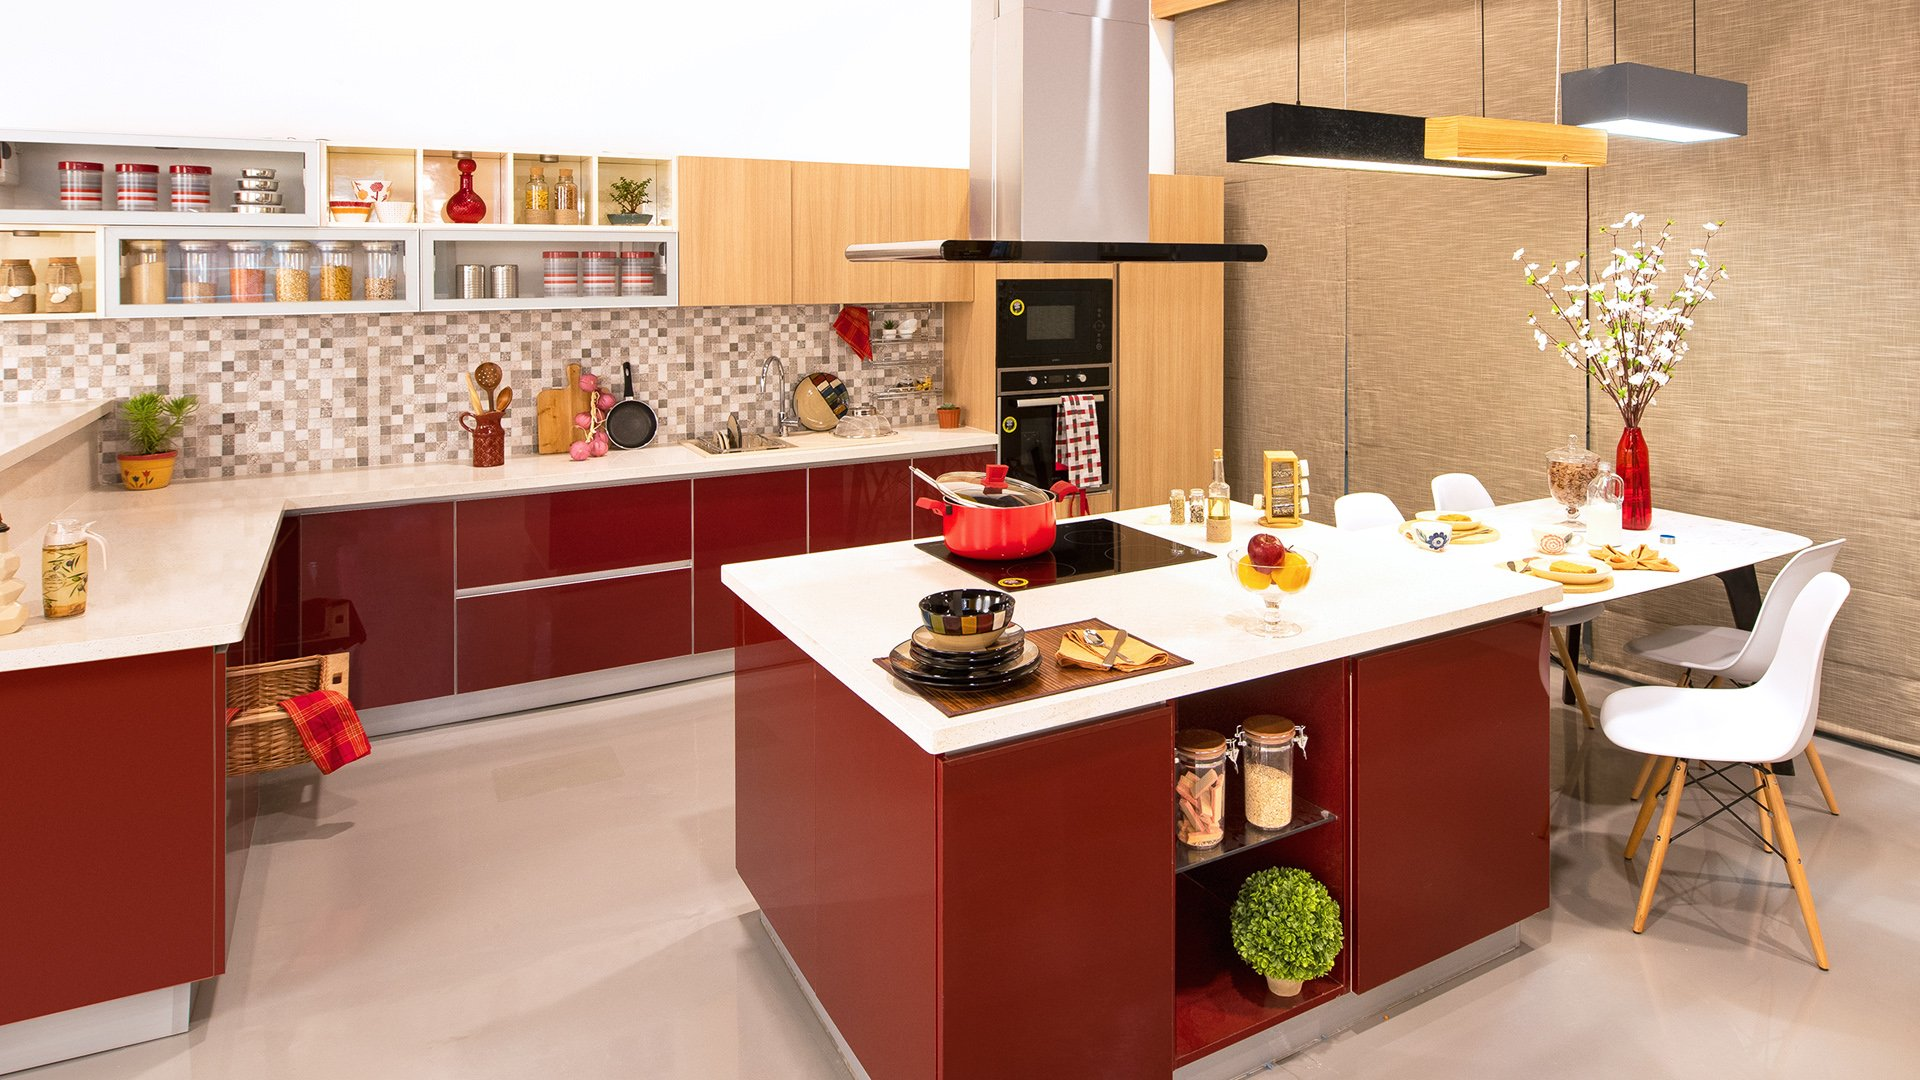 interior design photos for kitchen in india